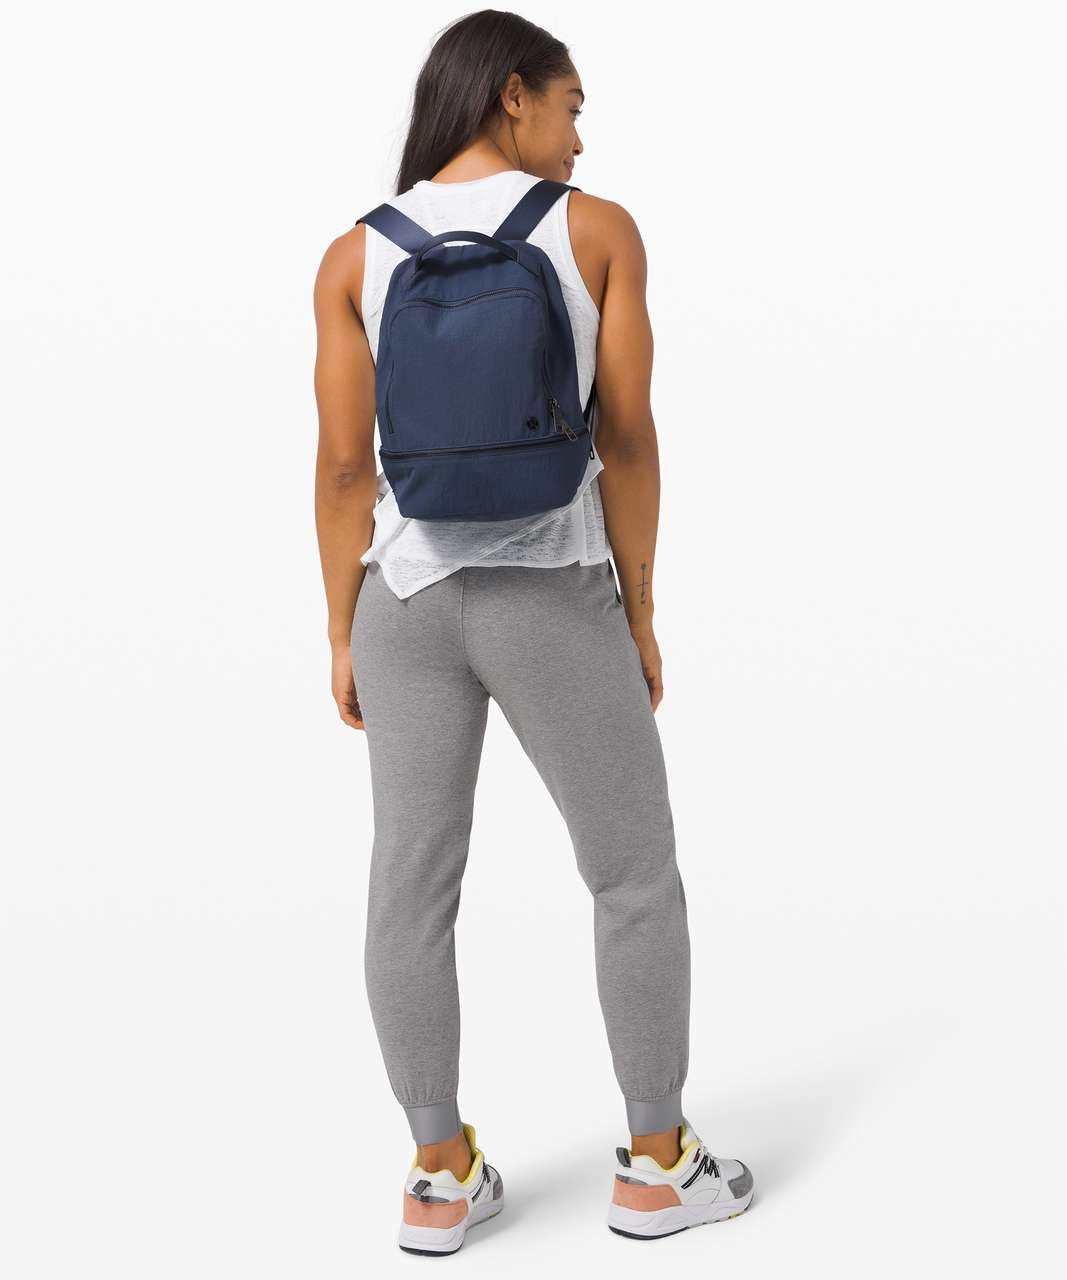 Lululemon City Adventurer Backpack Mini *10L - Iron Blue